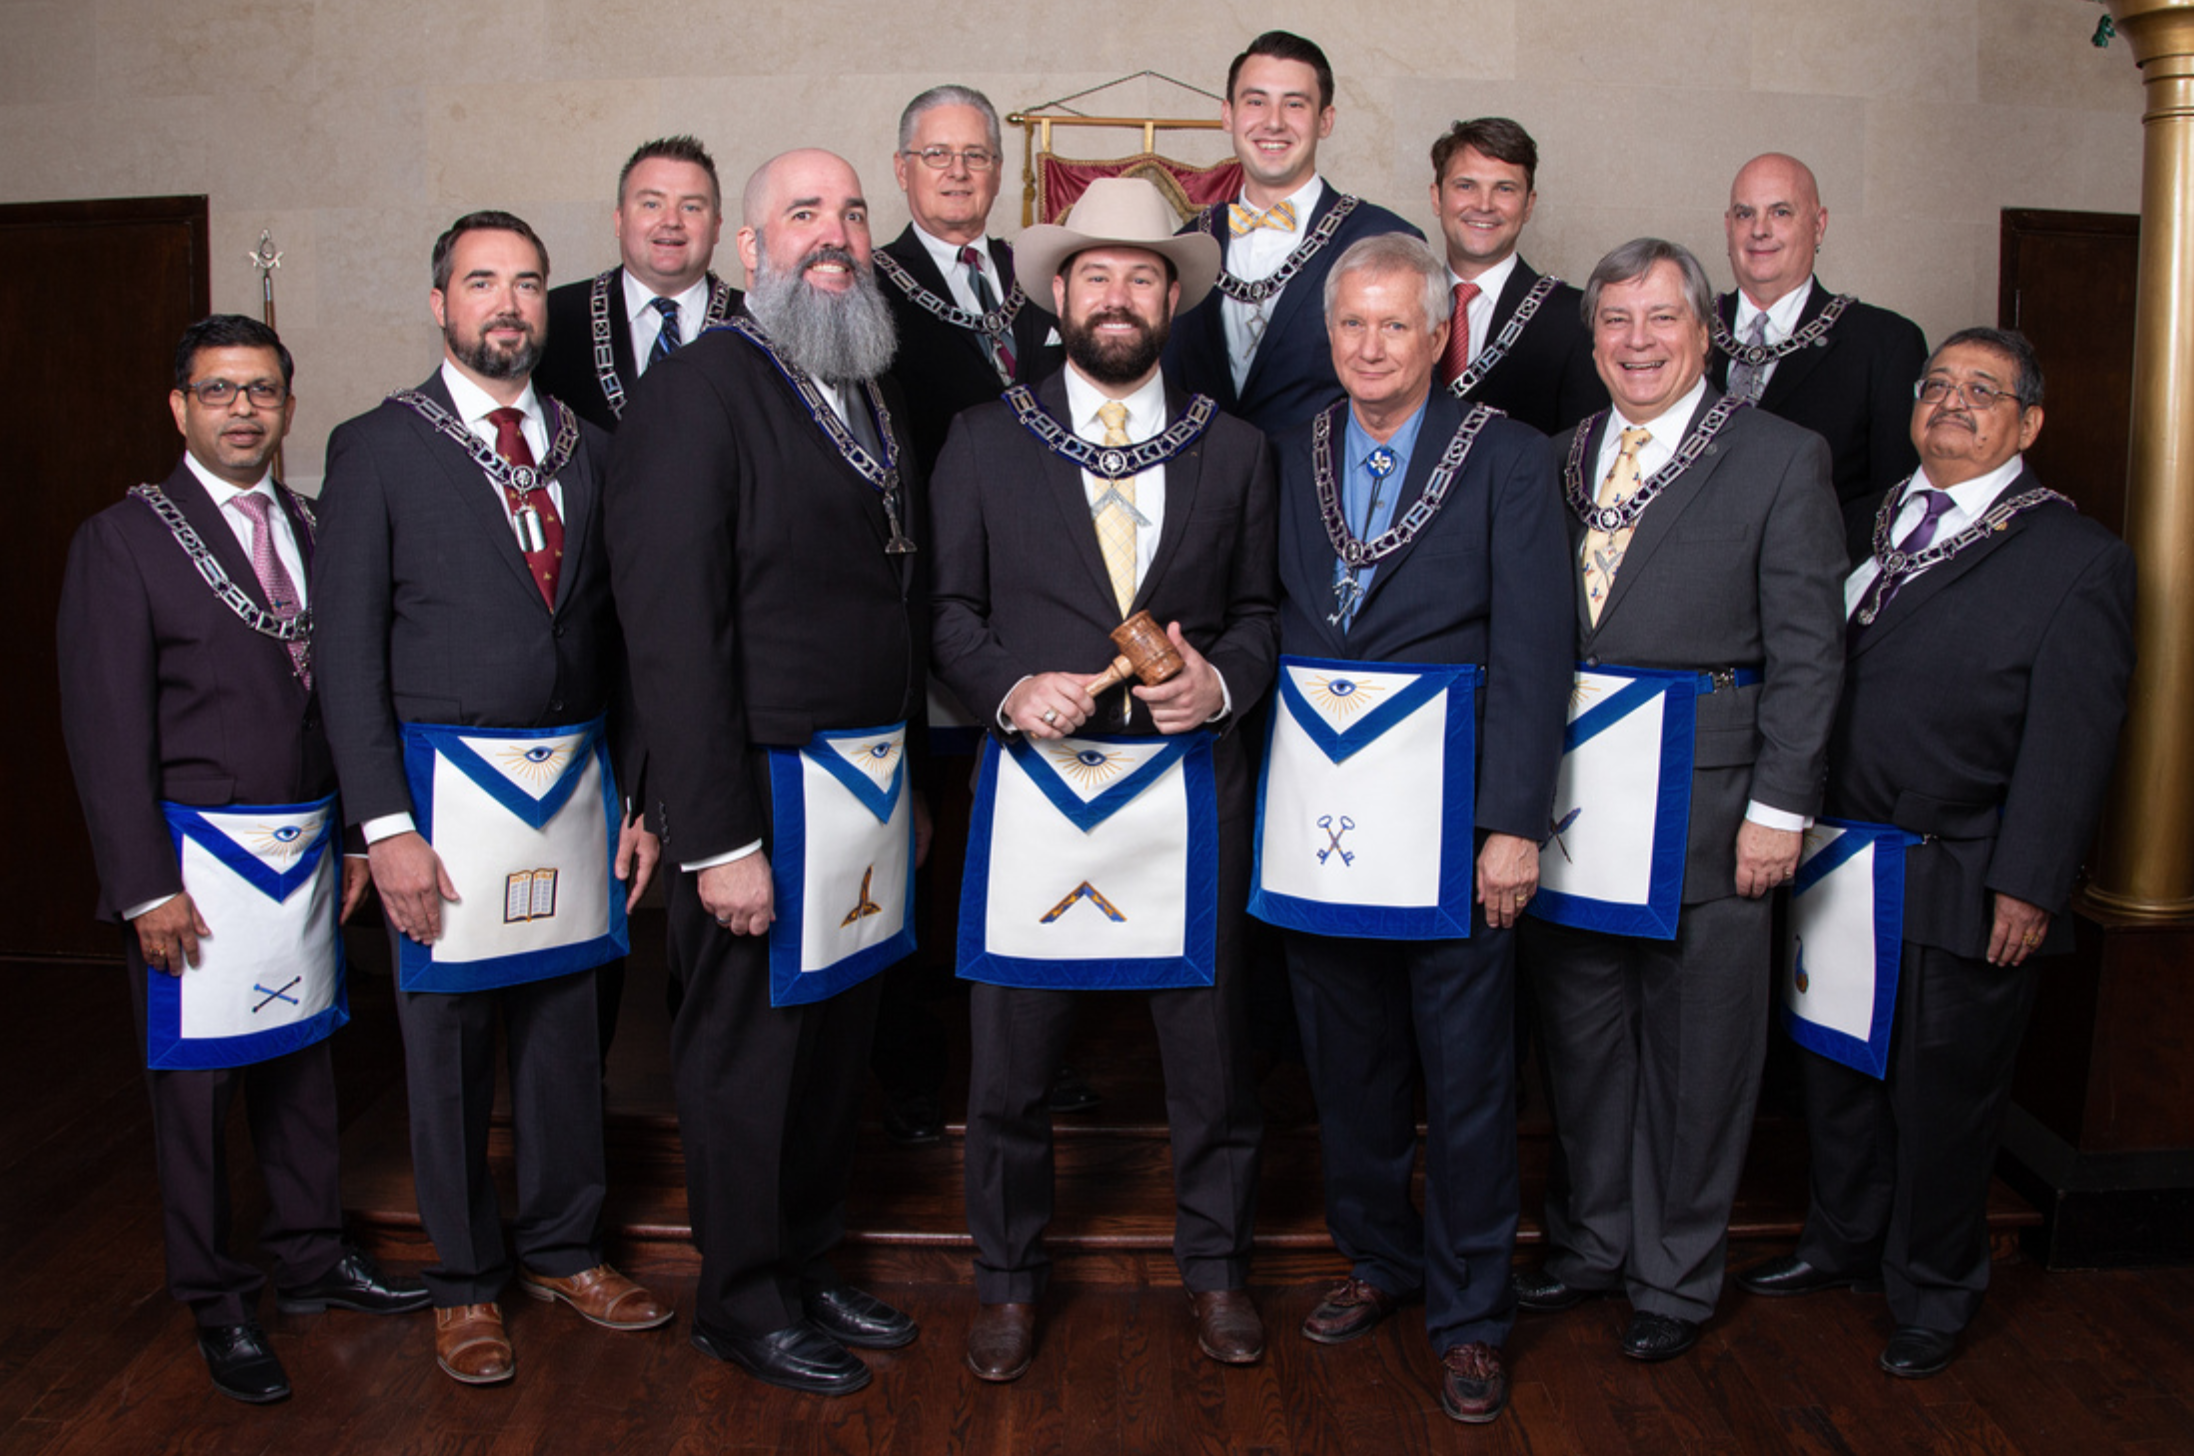 Hillcrest Lodge 2019-2020 Officer Photos